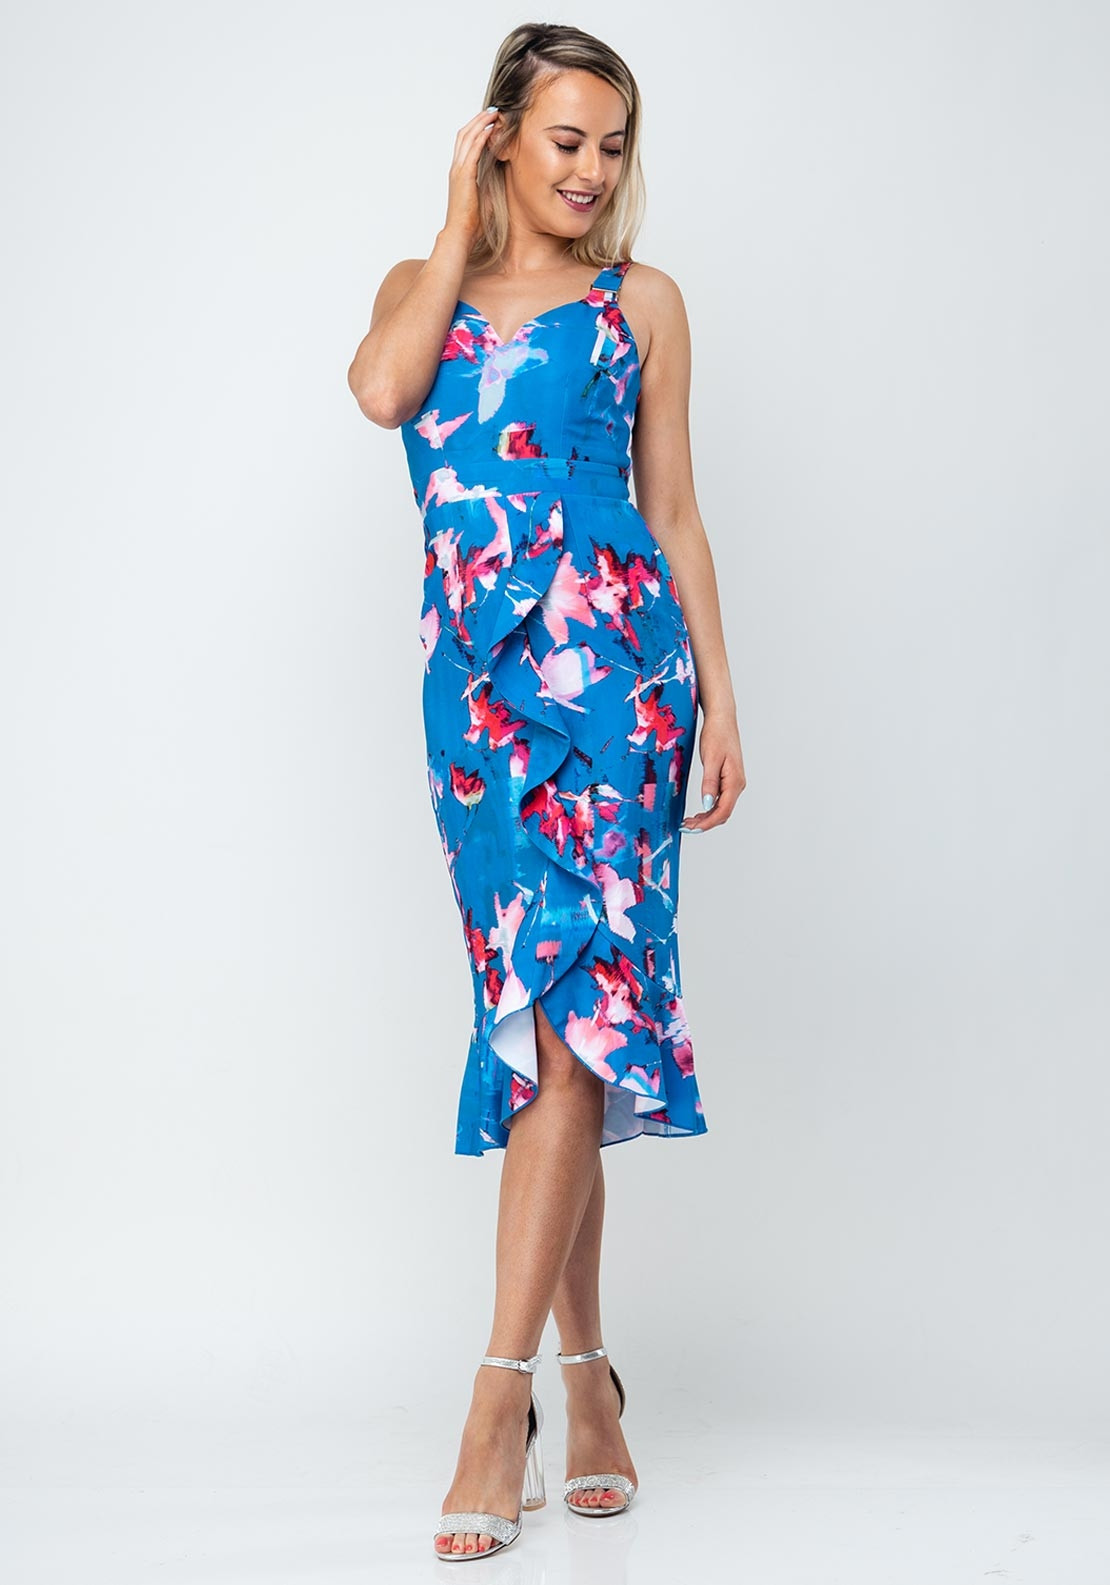 af6ab84e24c09 Little Mistress Printed Frill Pencil Dress, Blue. Be the first to review  this product